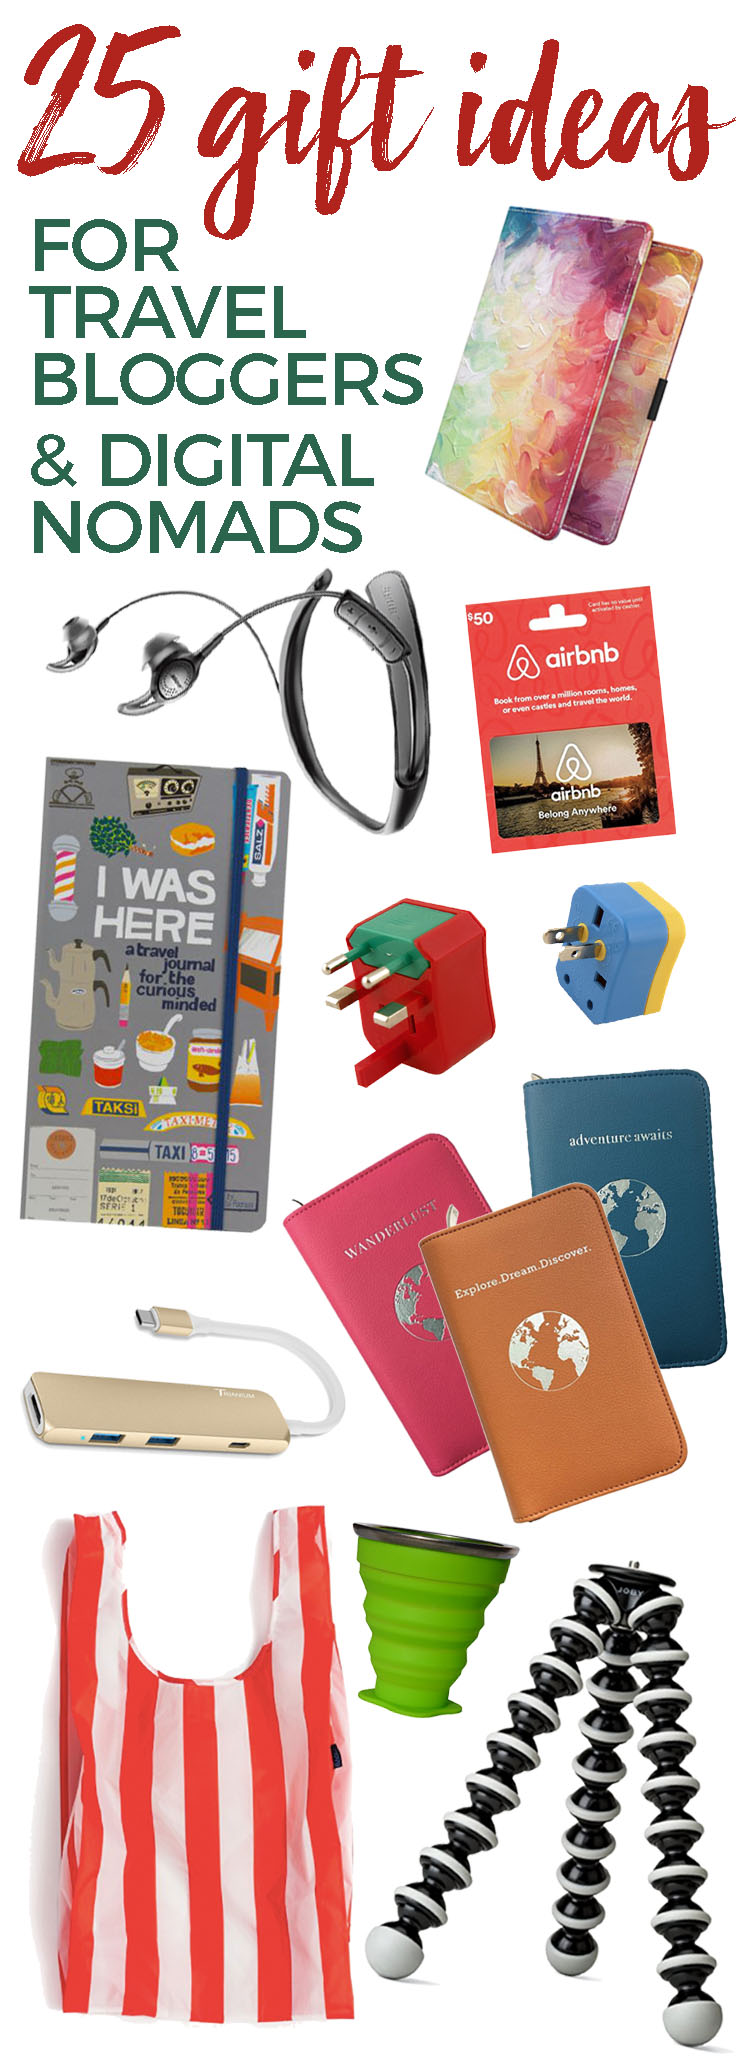 25 Gift Ideas for Digital Nomads & Travel Bloggers - theweekendguide.com